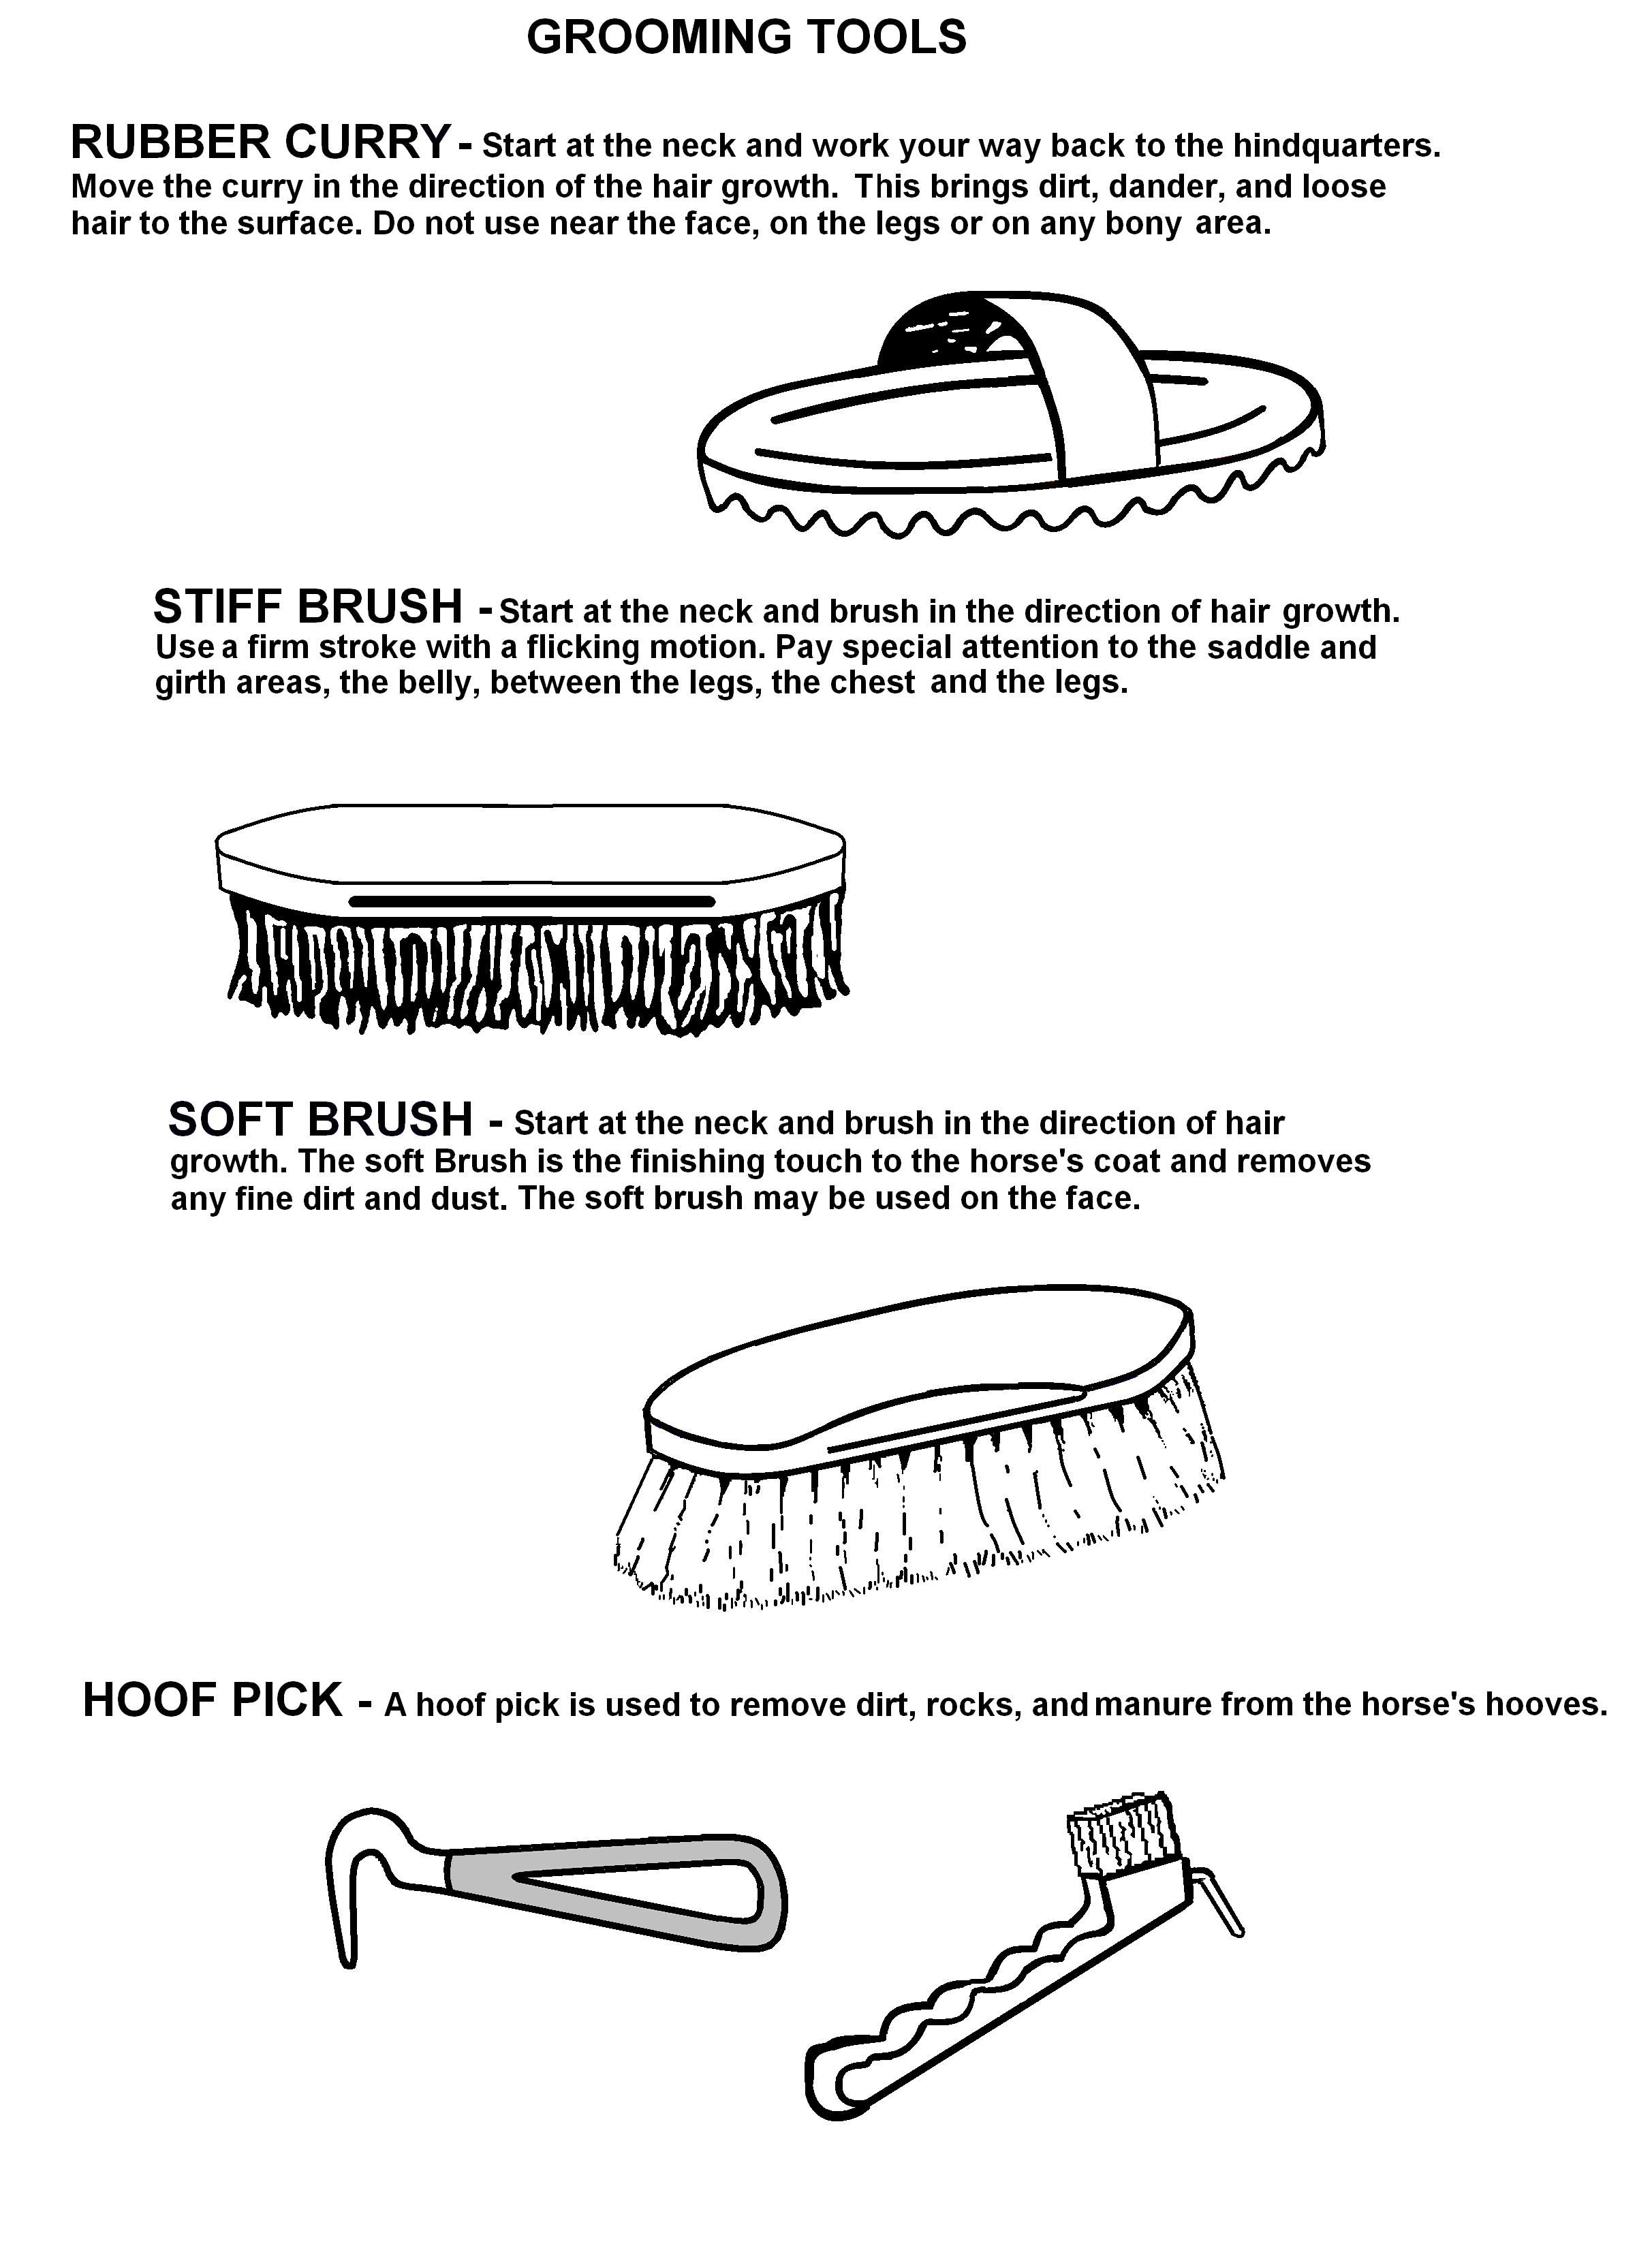 graphic regarding Grooming Tools for Horses Printable Worksheet titled Pin through Tenting Gang upon Tenting Applications Horse grooming